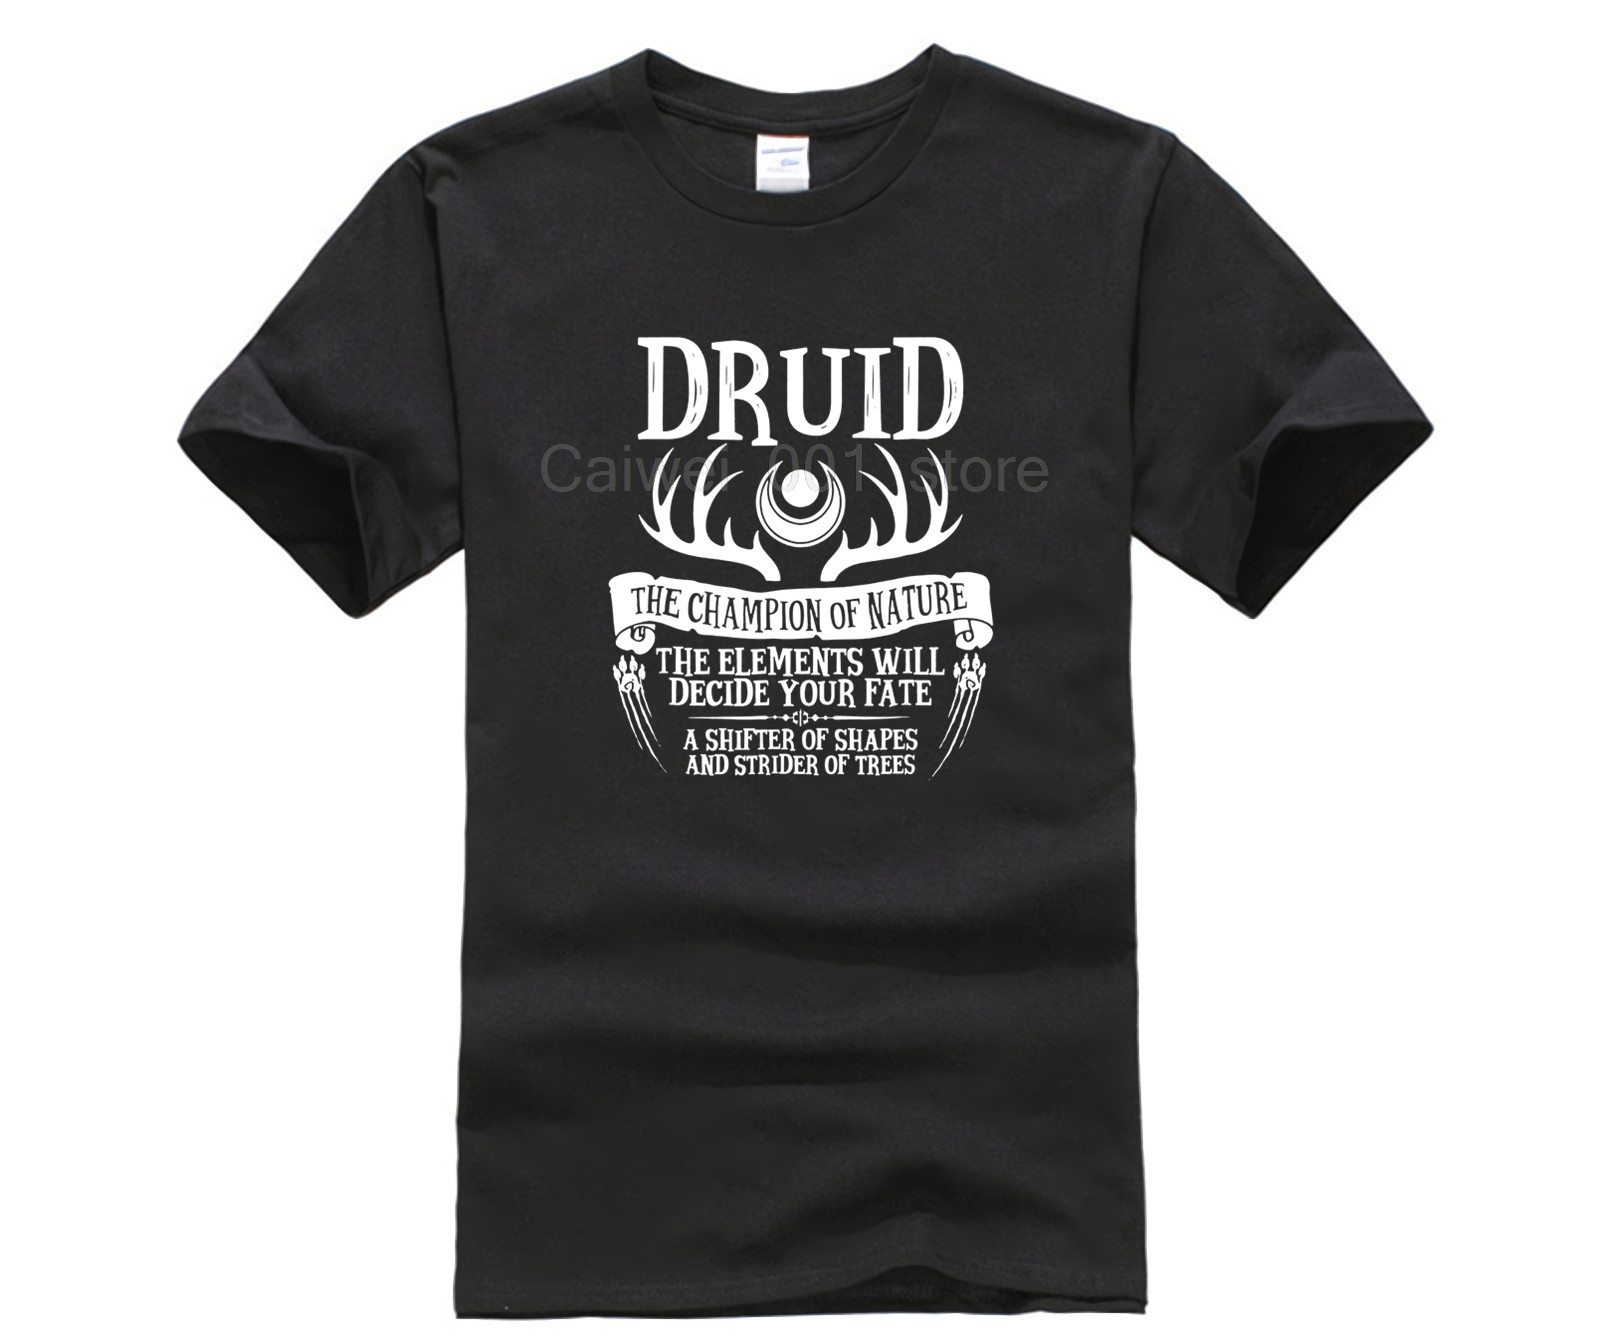 Top Men's Cotton T shirt brand men shirt The Druid Fantasy RPG DnD Design Men's Print CasualT Shirt Popular image